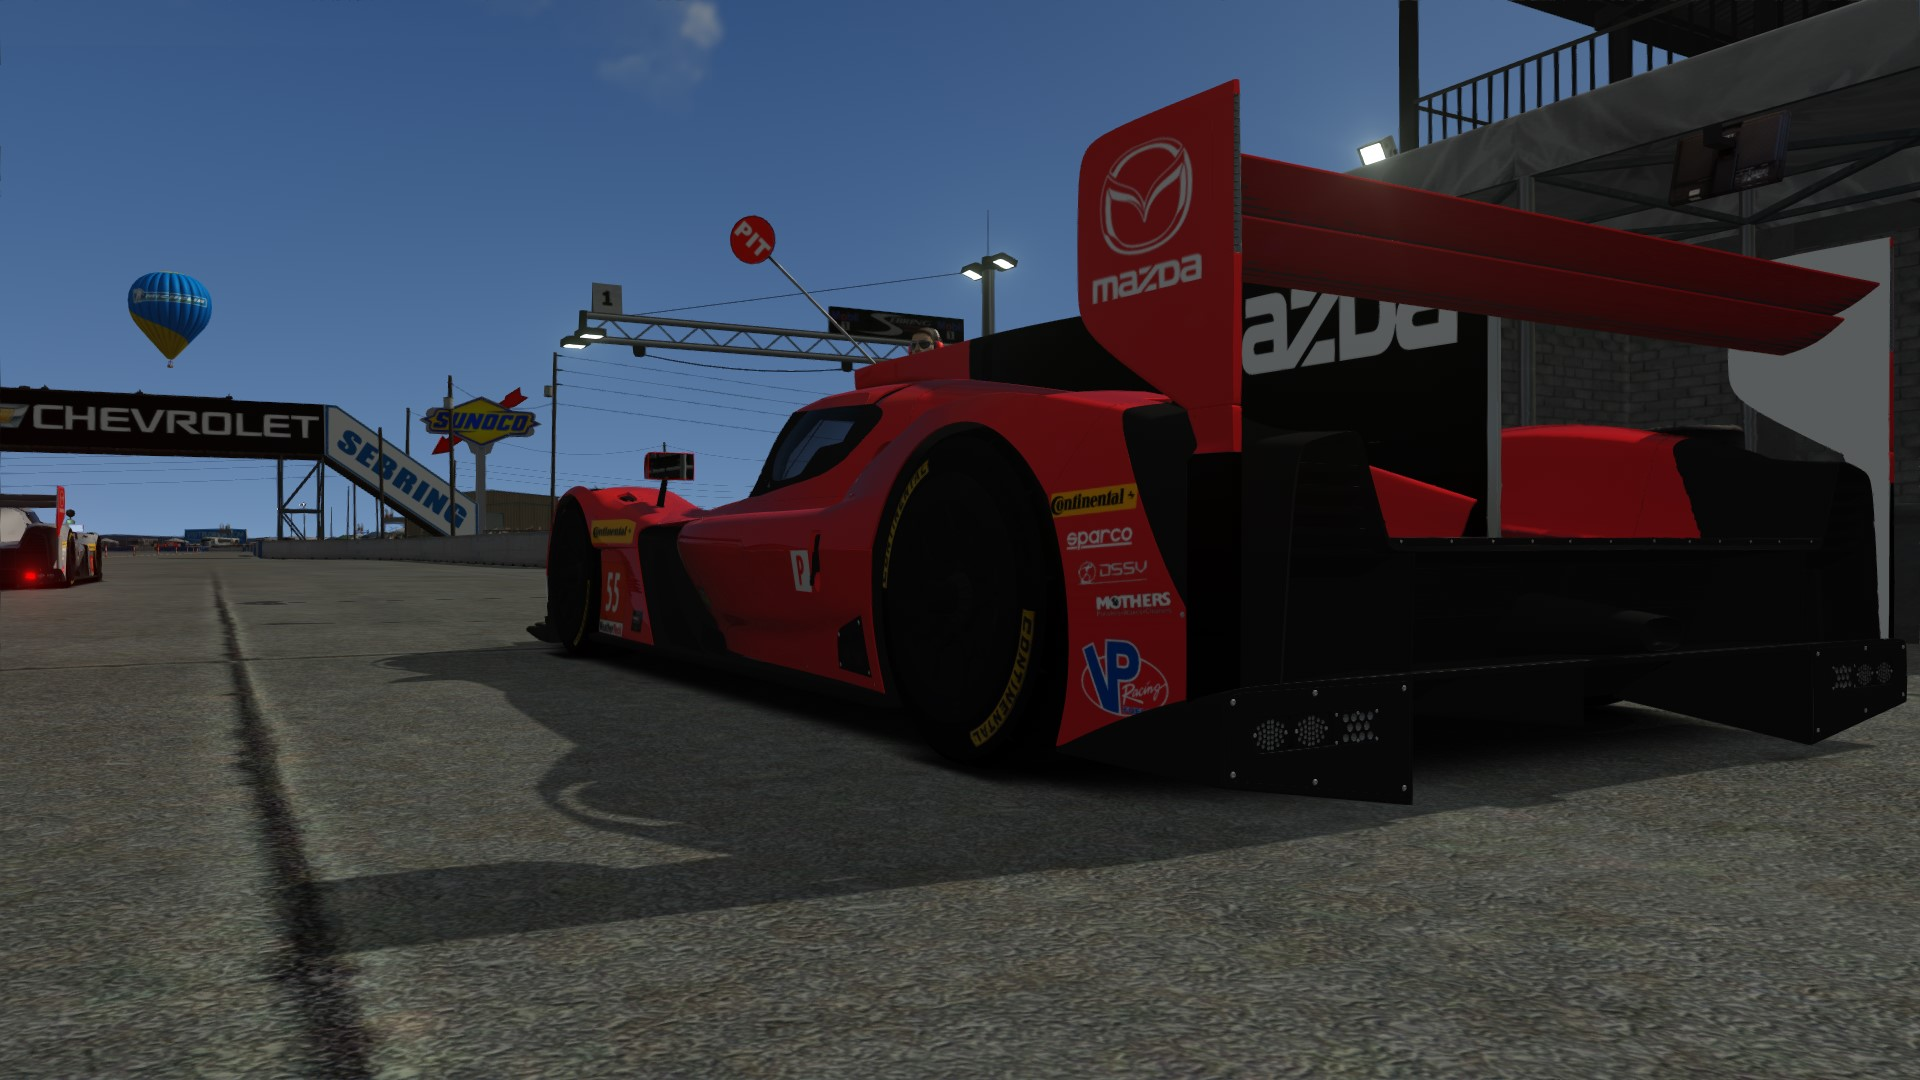 Screenshot_ag_mazda_rt24-p_sebring_1-4-117-16-22-10.jpg